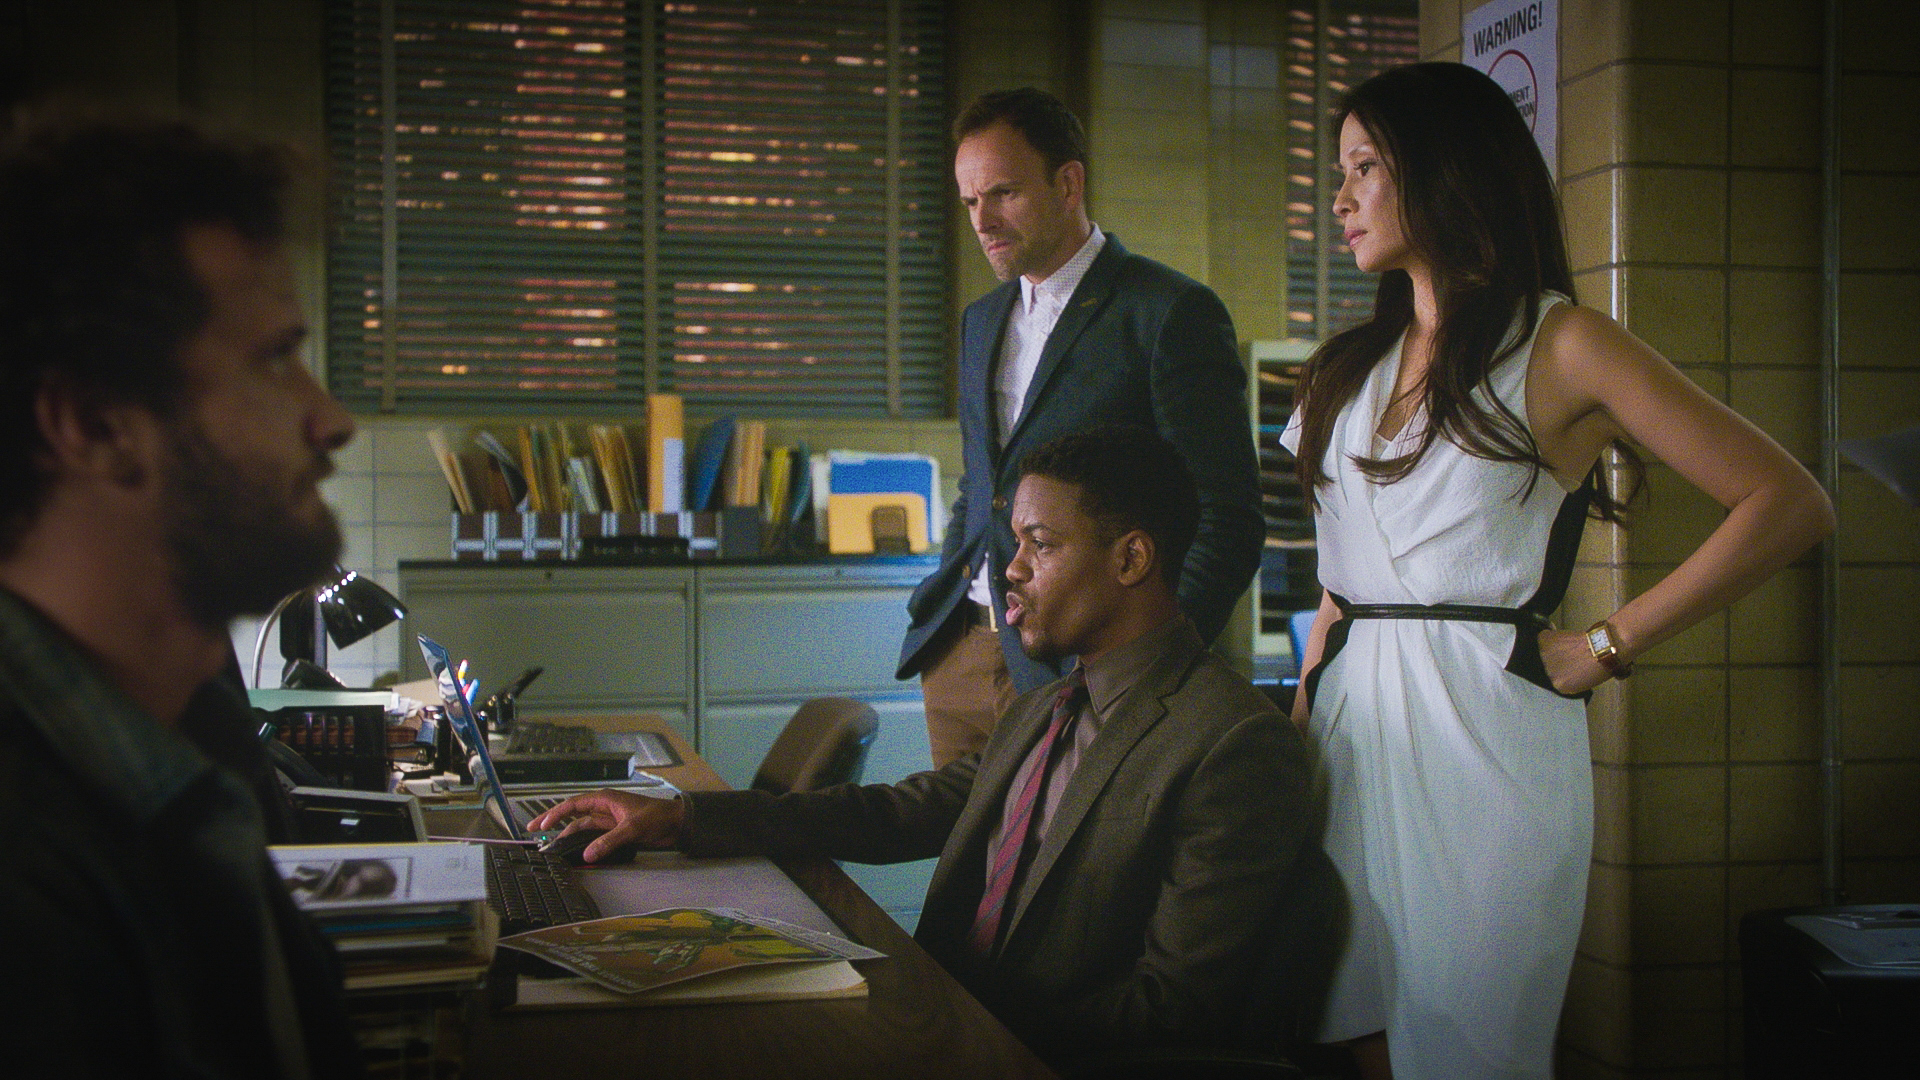 Jon Michael Hill as Detective Marcus Bell, Jonny Lee Miller as Sherlock Holmes, and Lucy Liu as Dr. Joan Watson